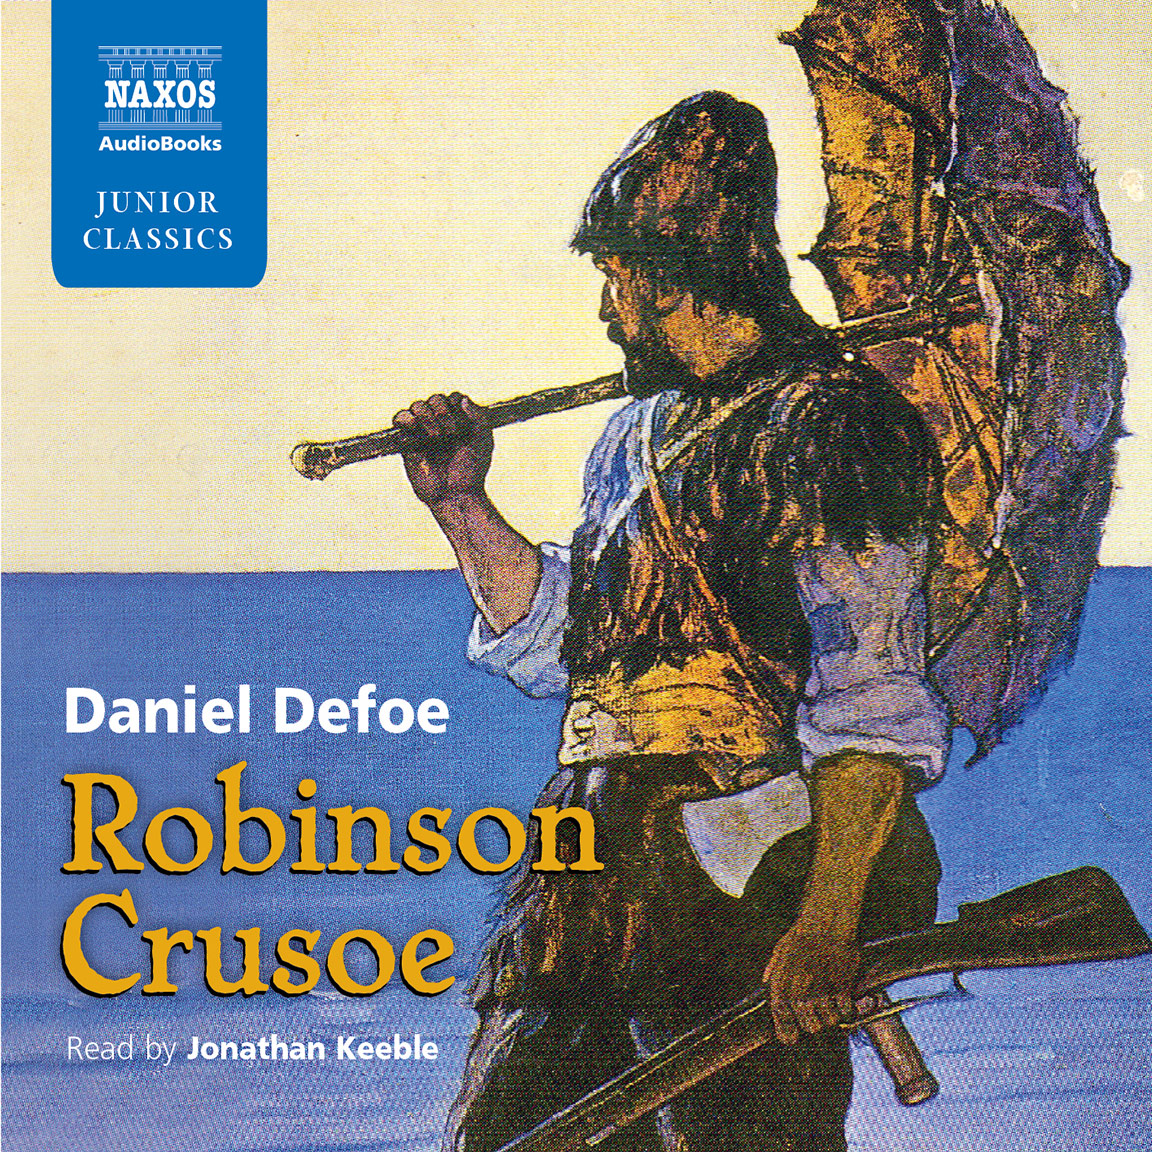 robinson crusoe retold for younger listeners abridged naxos robinson crusoe retold for younger listeners abridged naxos audiobooks